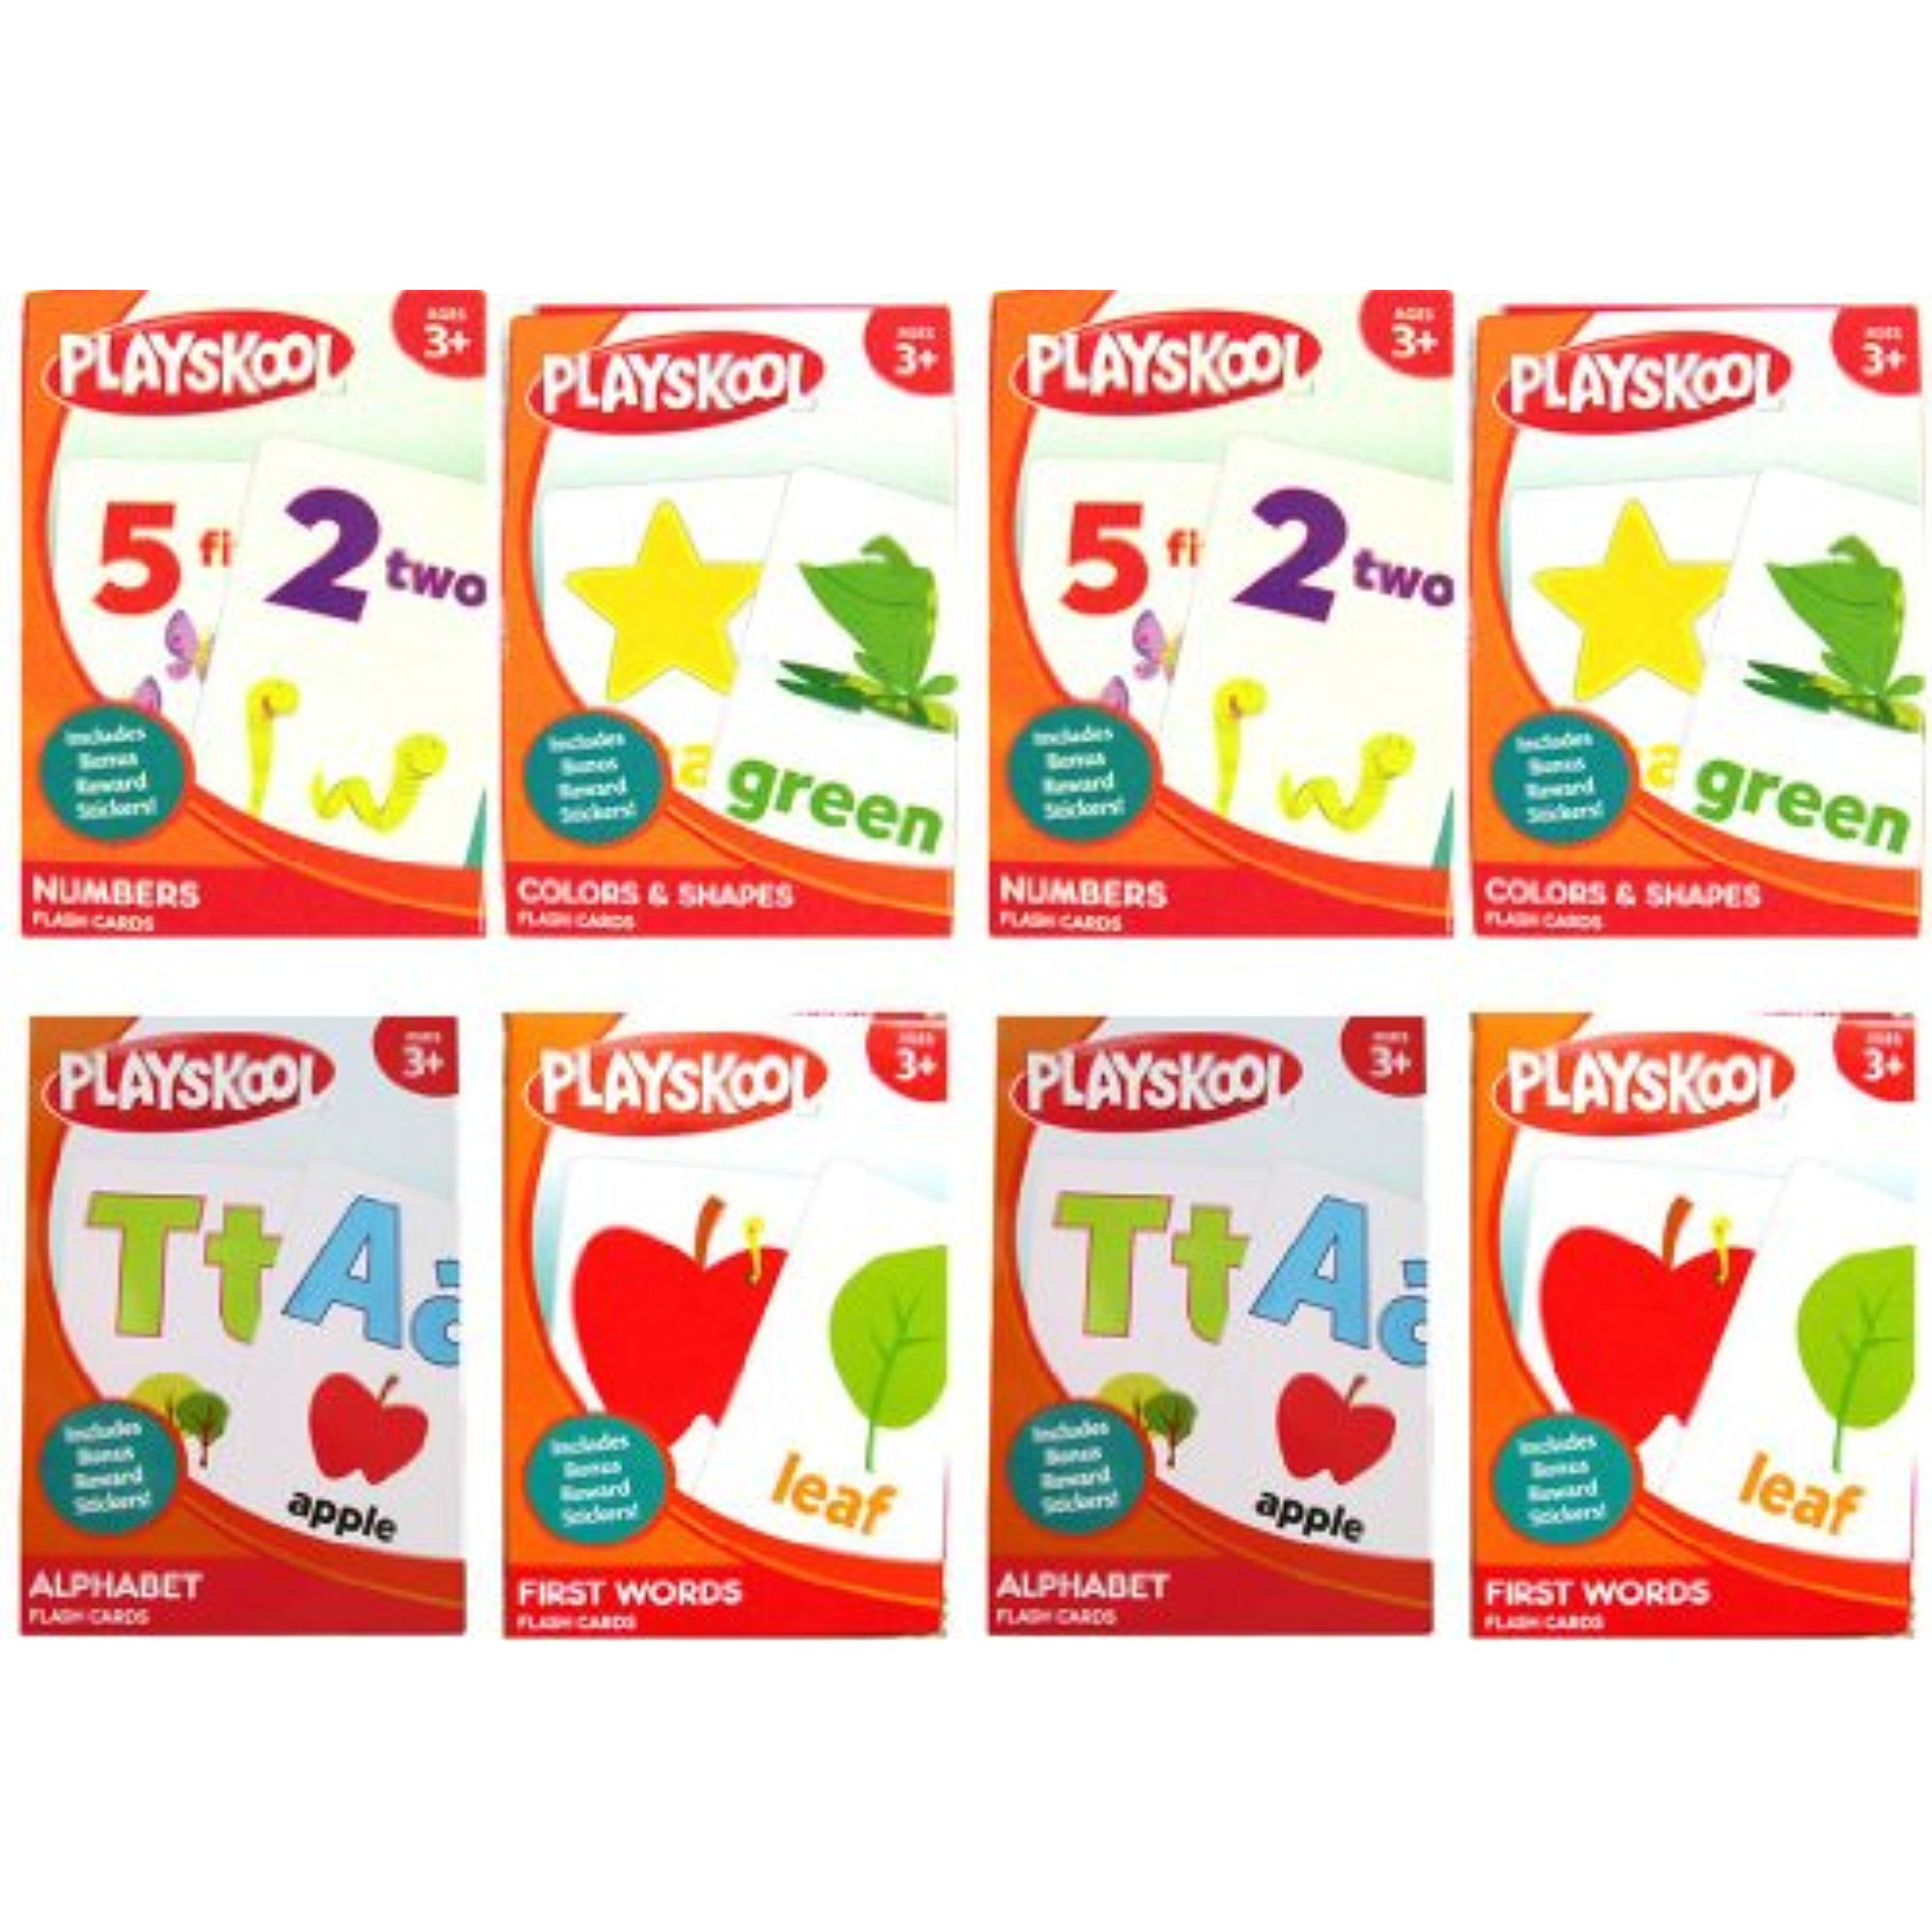 Playskool Early Learning Flash Cards PreK-K 8-Pack ~ Alphabet, Colors & Shapes, First... by